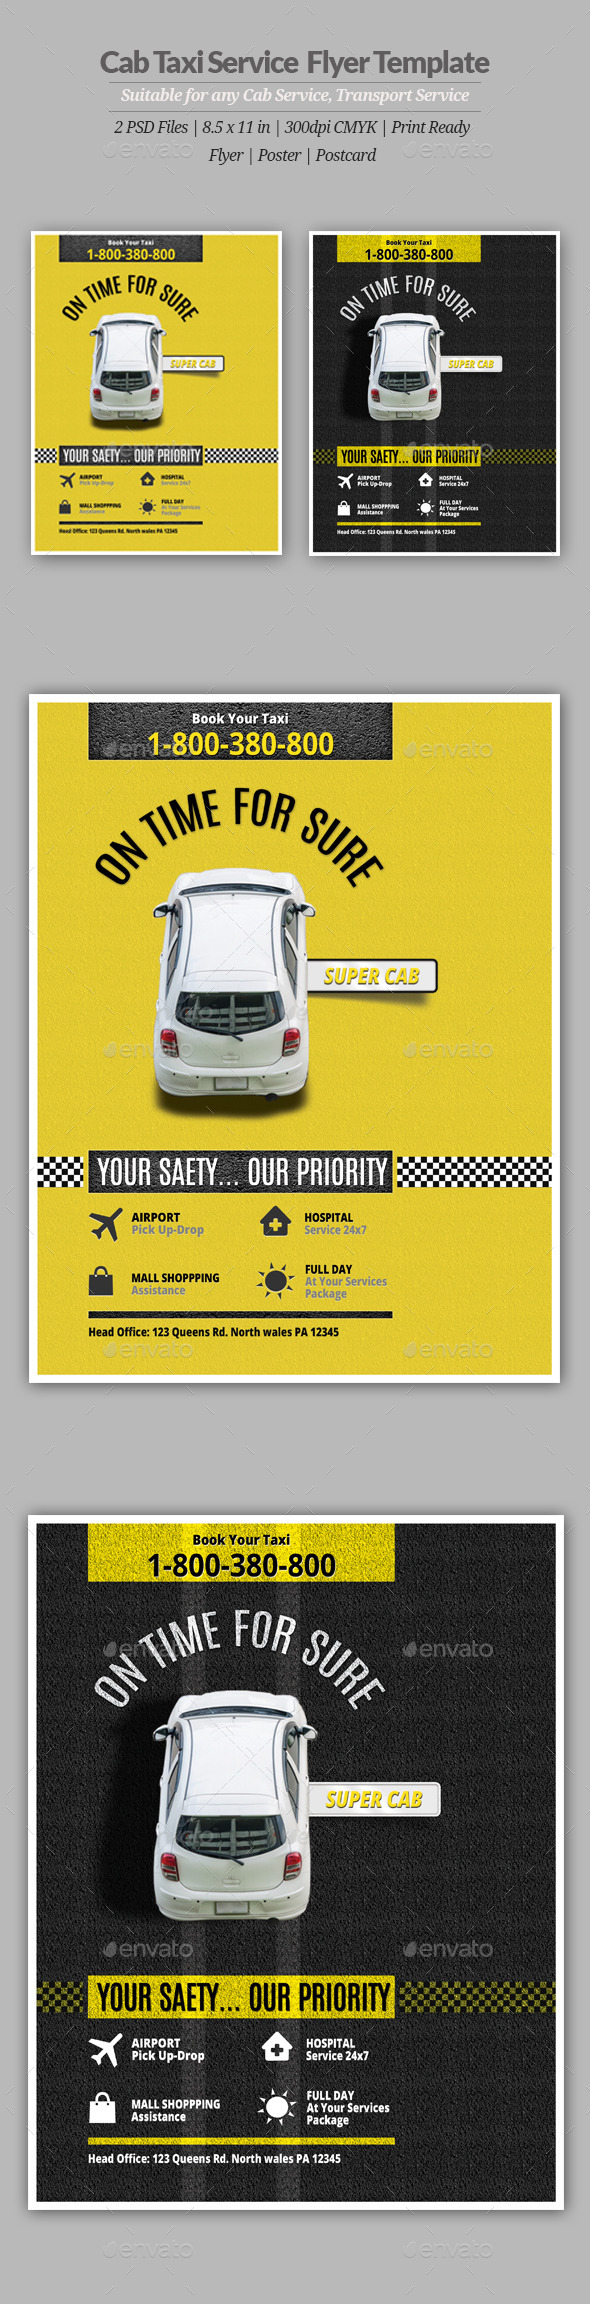 GraphicRiver Cab Taxi Service Flyer or Poster 11239091